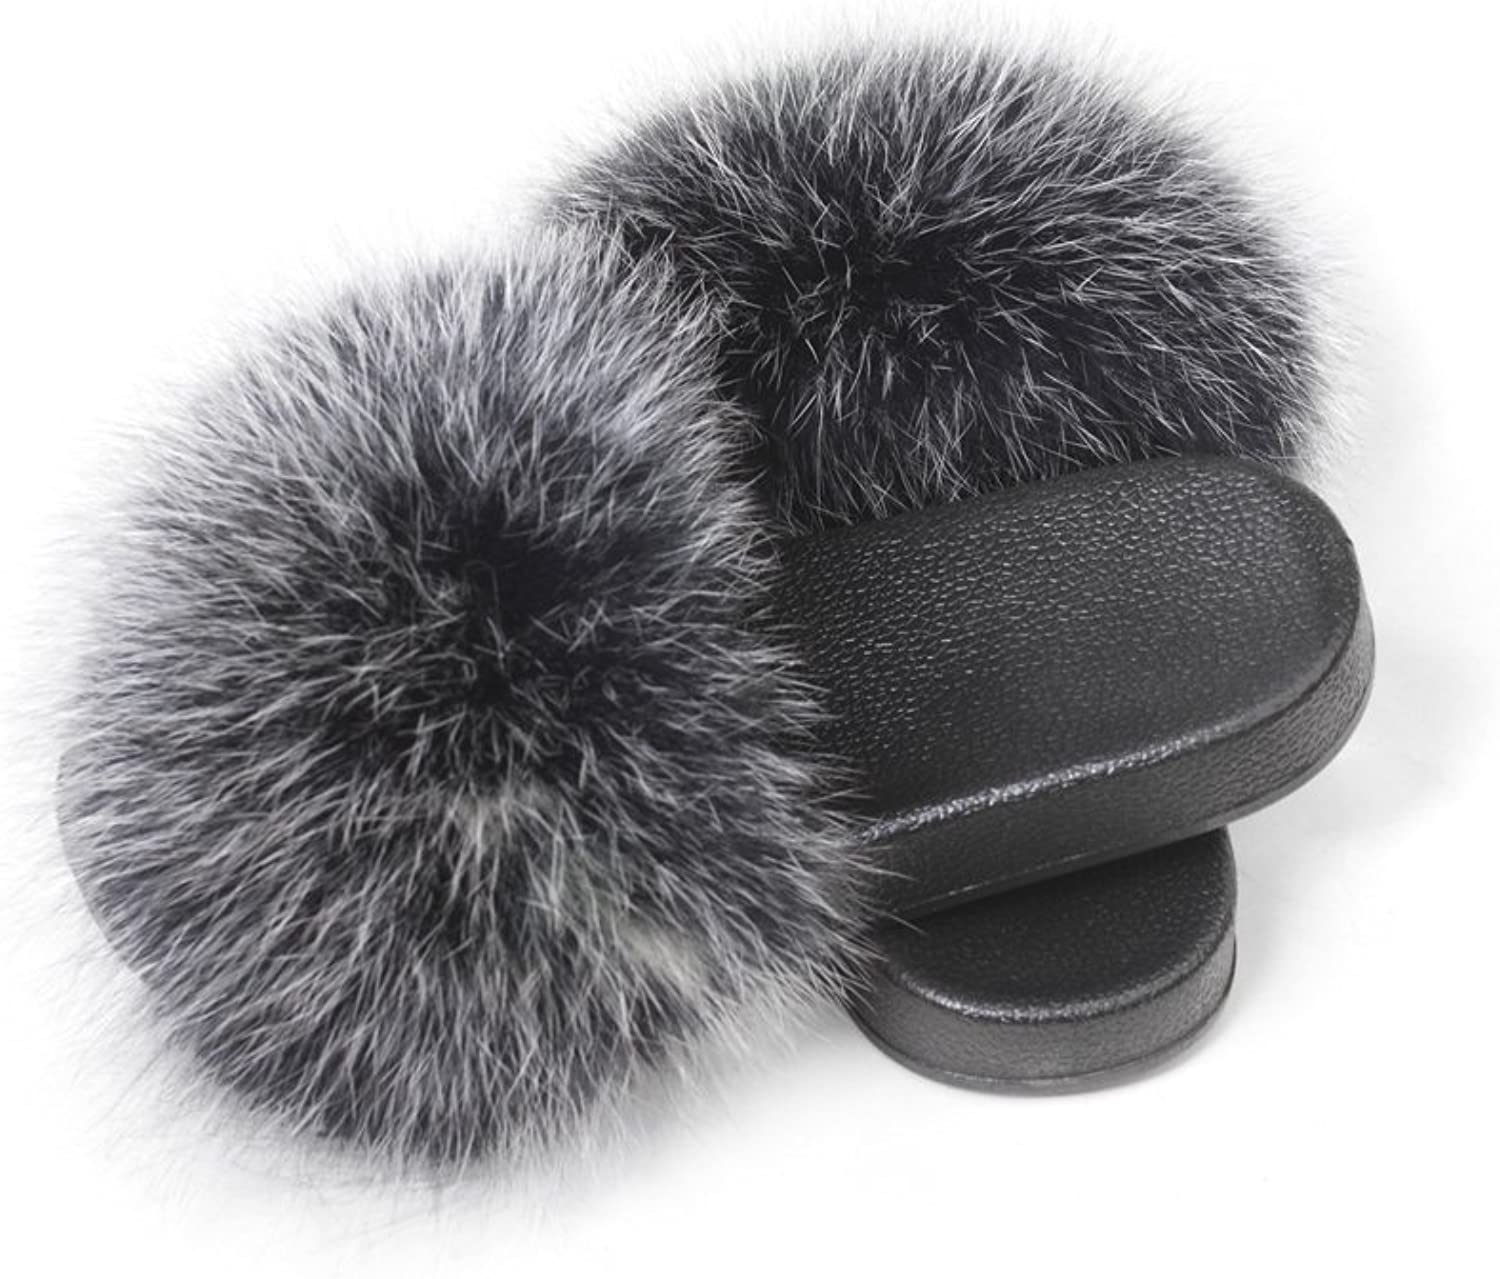 Fur Story Women's Fox Fur Slides for Summer Furry Slides for Outdoor Soft Flat Fluffy Slippers (6, Silvery Black)